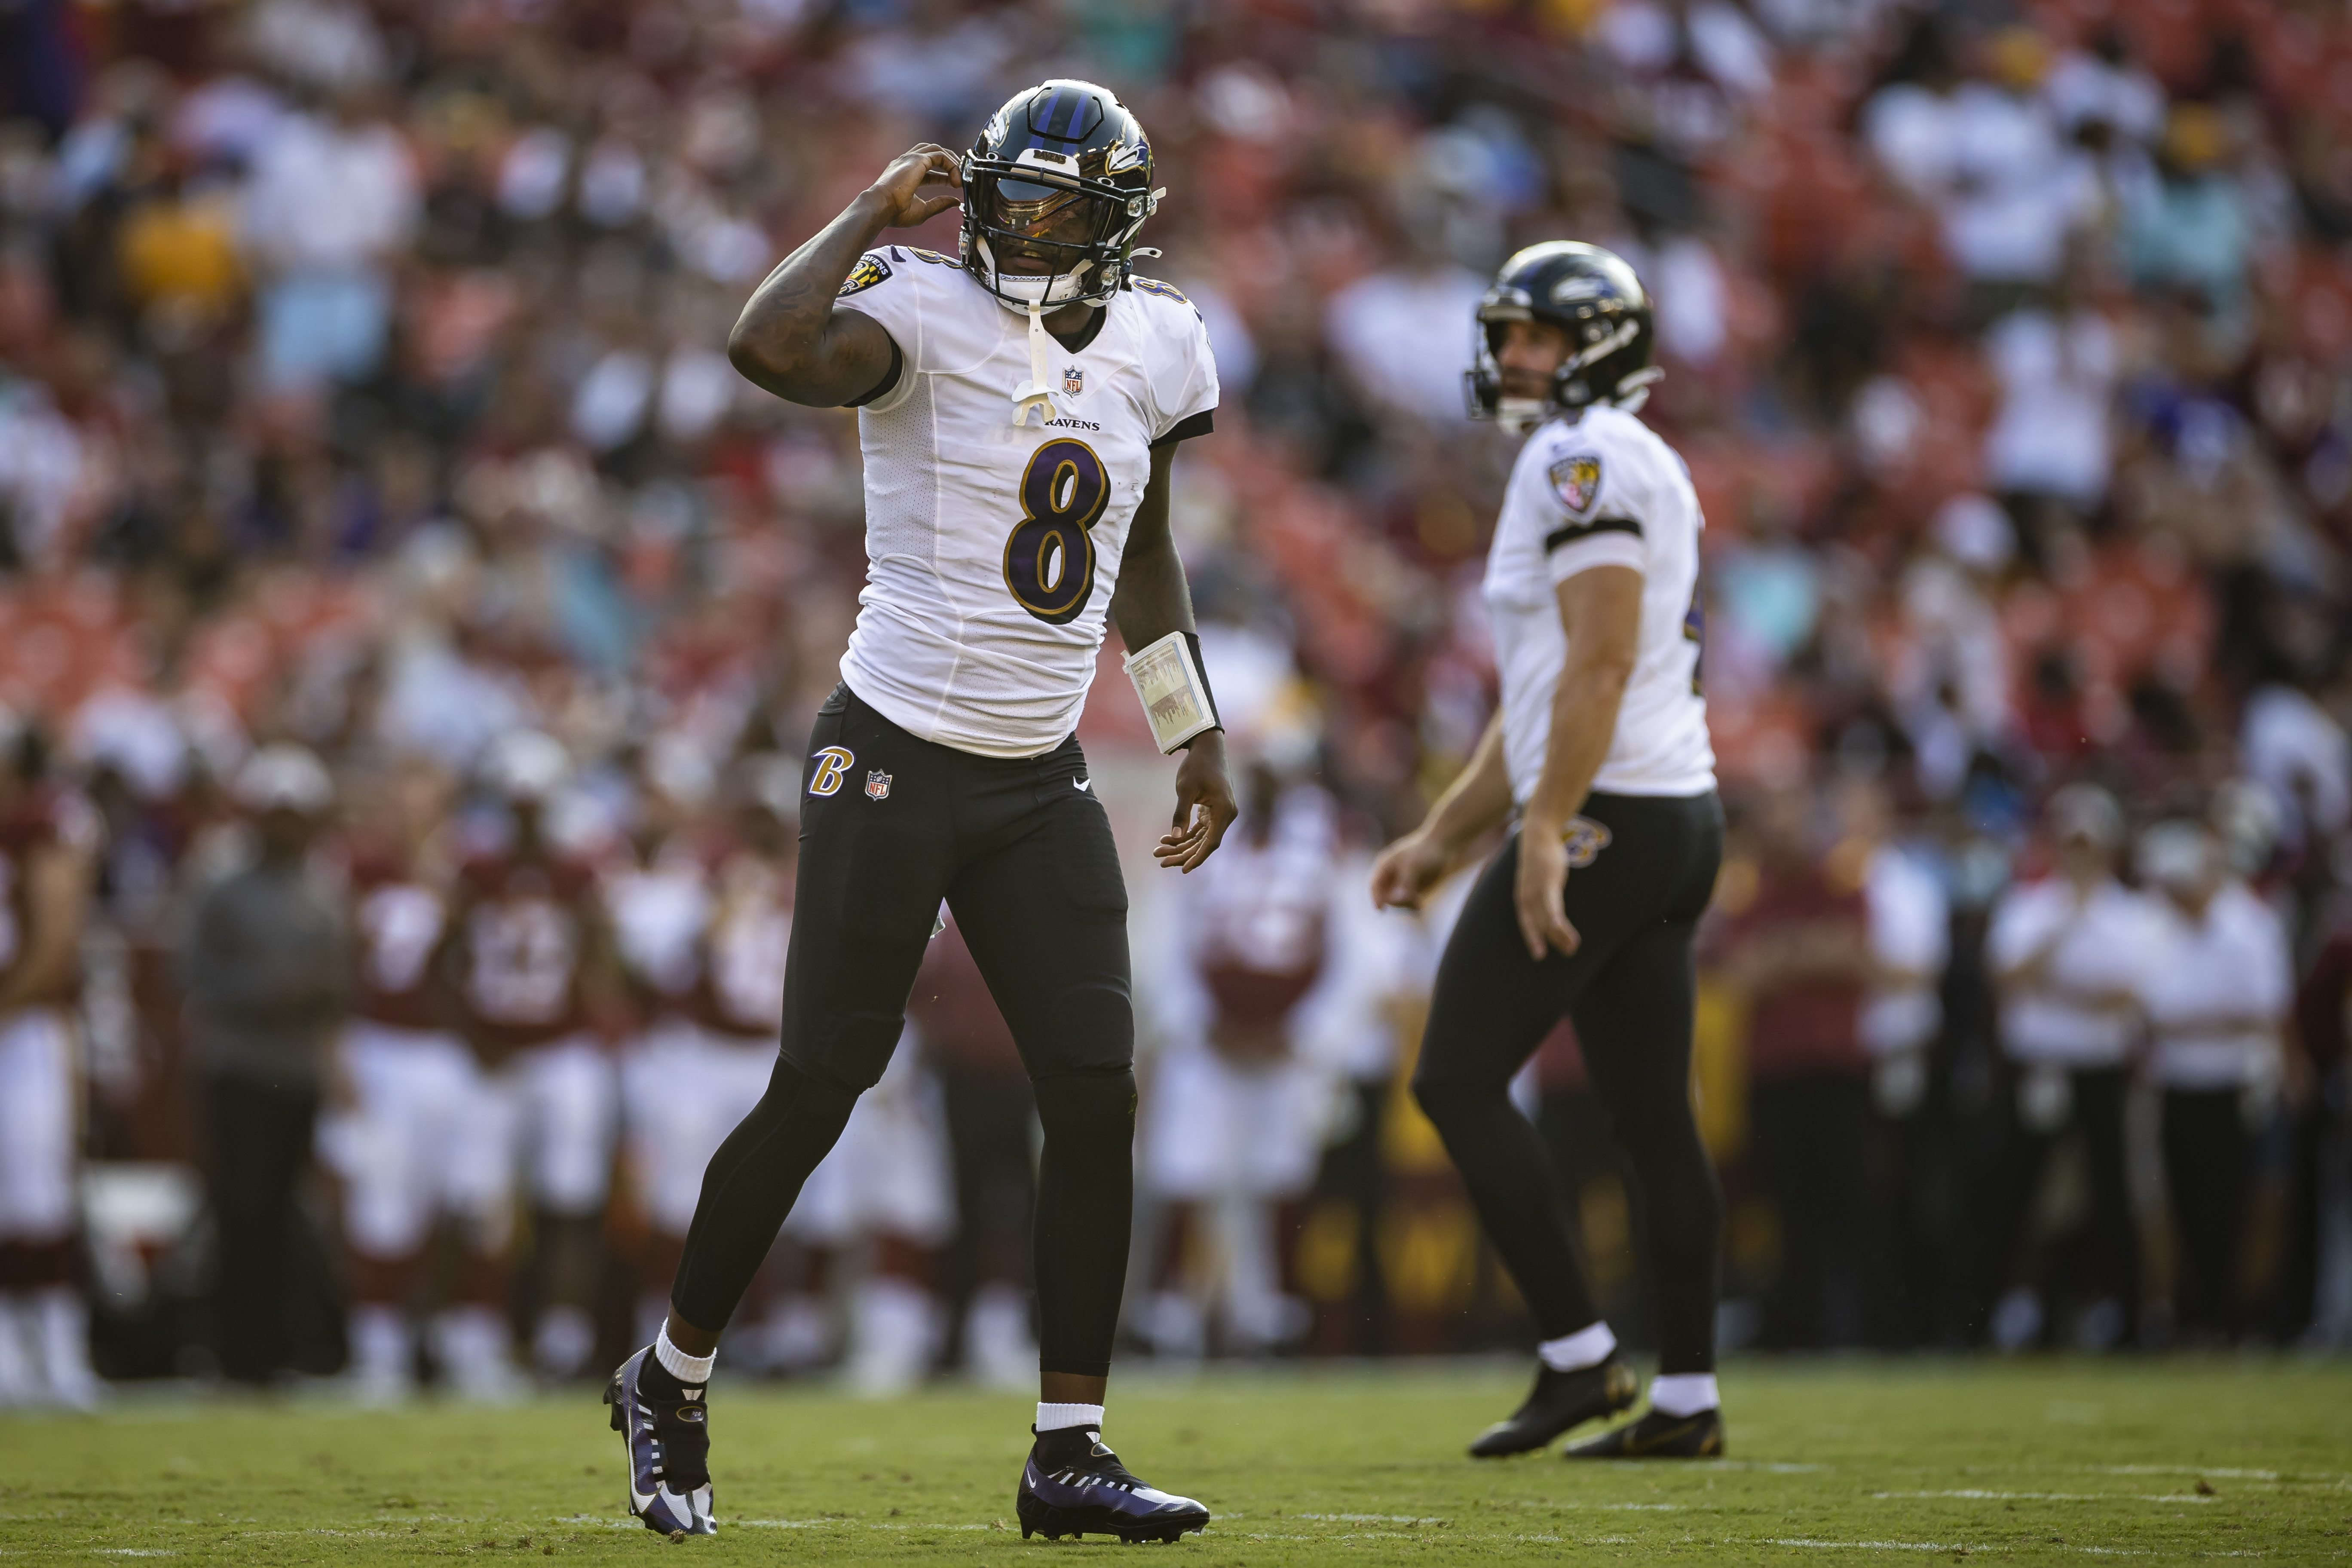 : Lamar Jackson #8 of the Baltimore Ravens looks on against the Washington Football Team during the first half of the preseason game at FedExField on August 28, 2021 in Landover, Maryland.